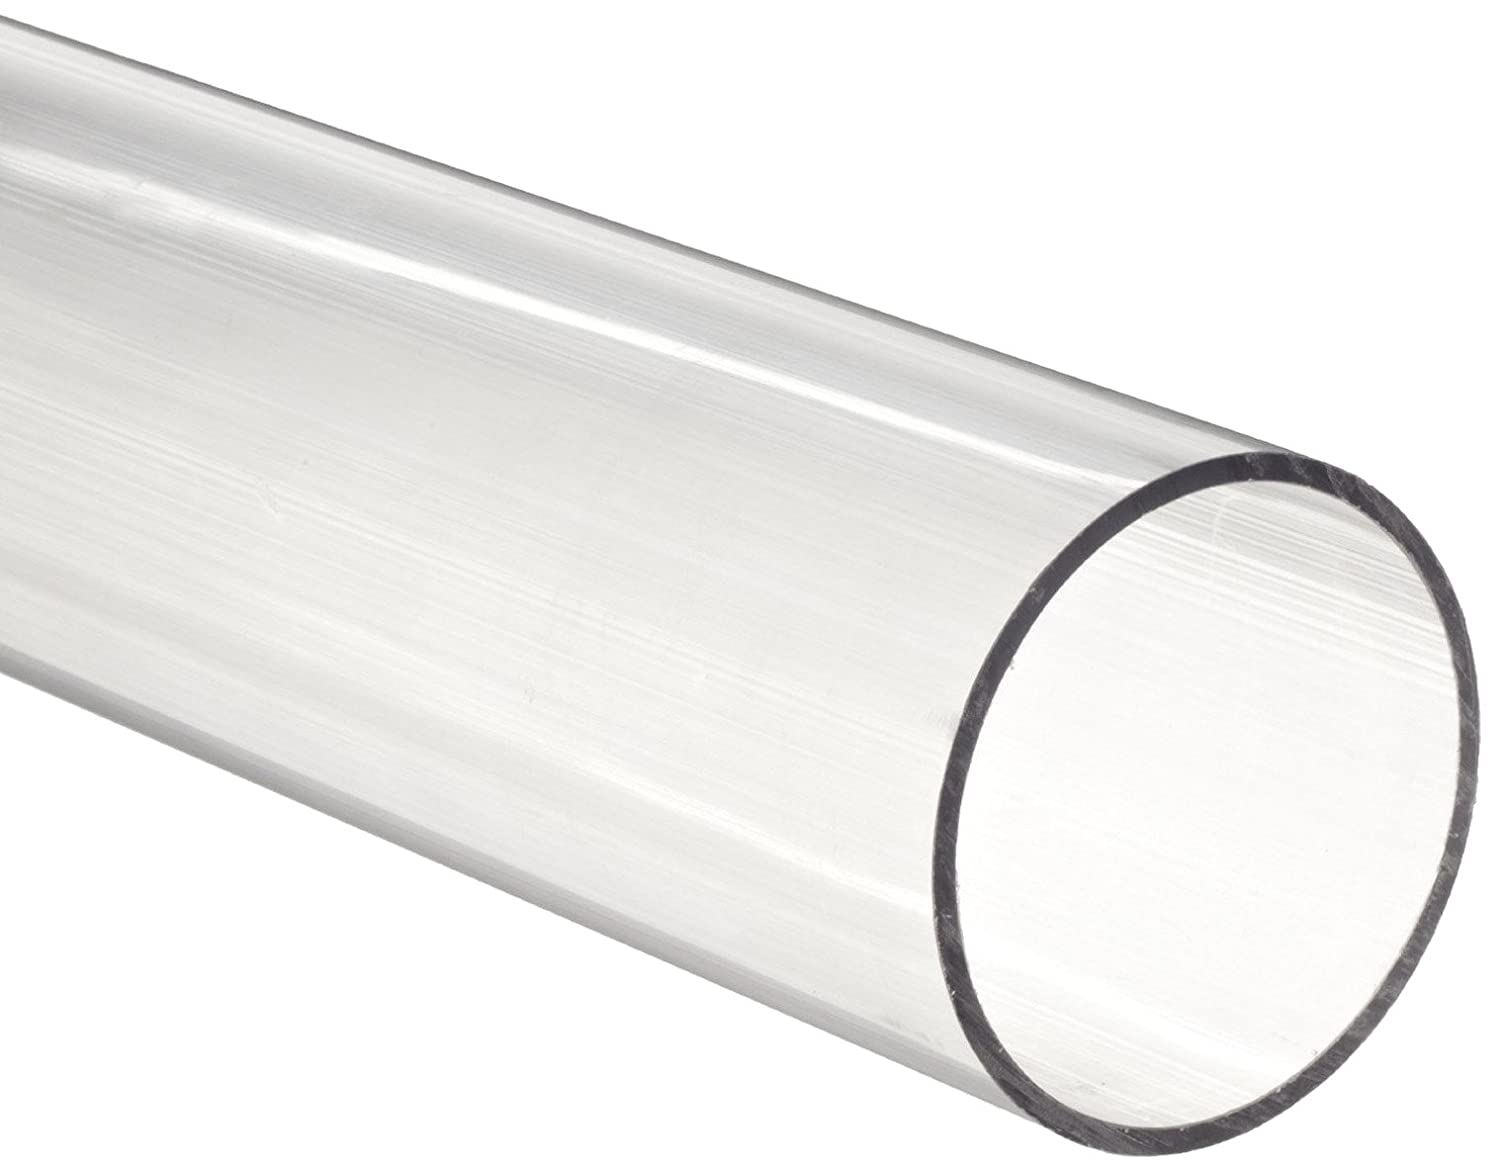 Polycarbonate Tubing Cheap mail order Our shop most popular specialty store 2 1 4